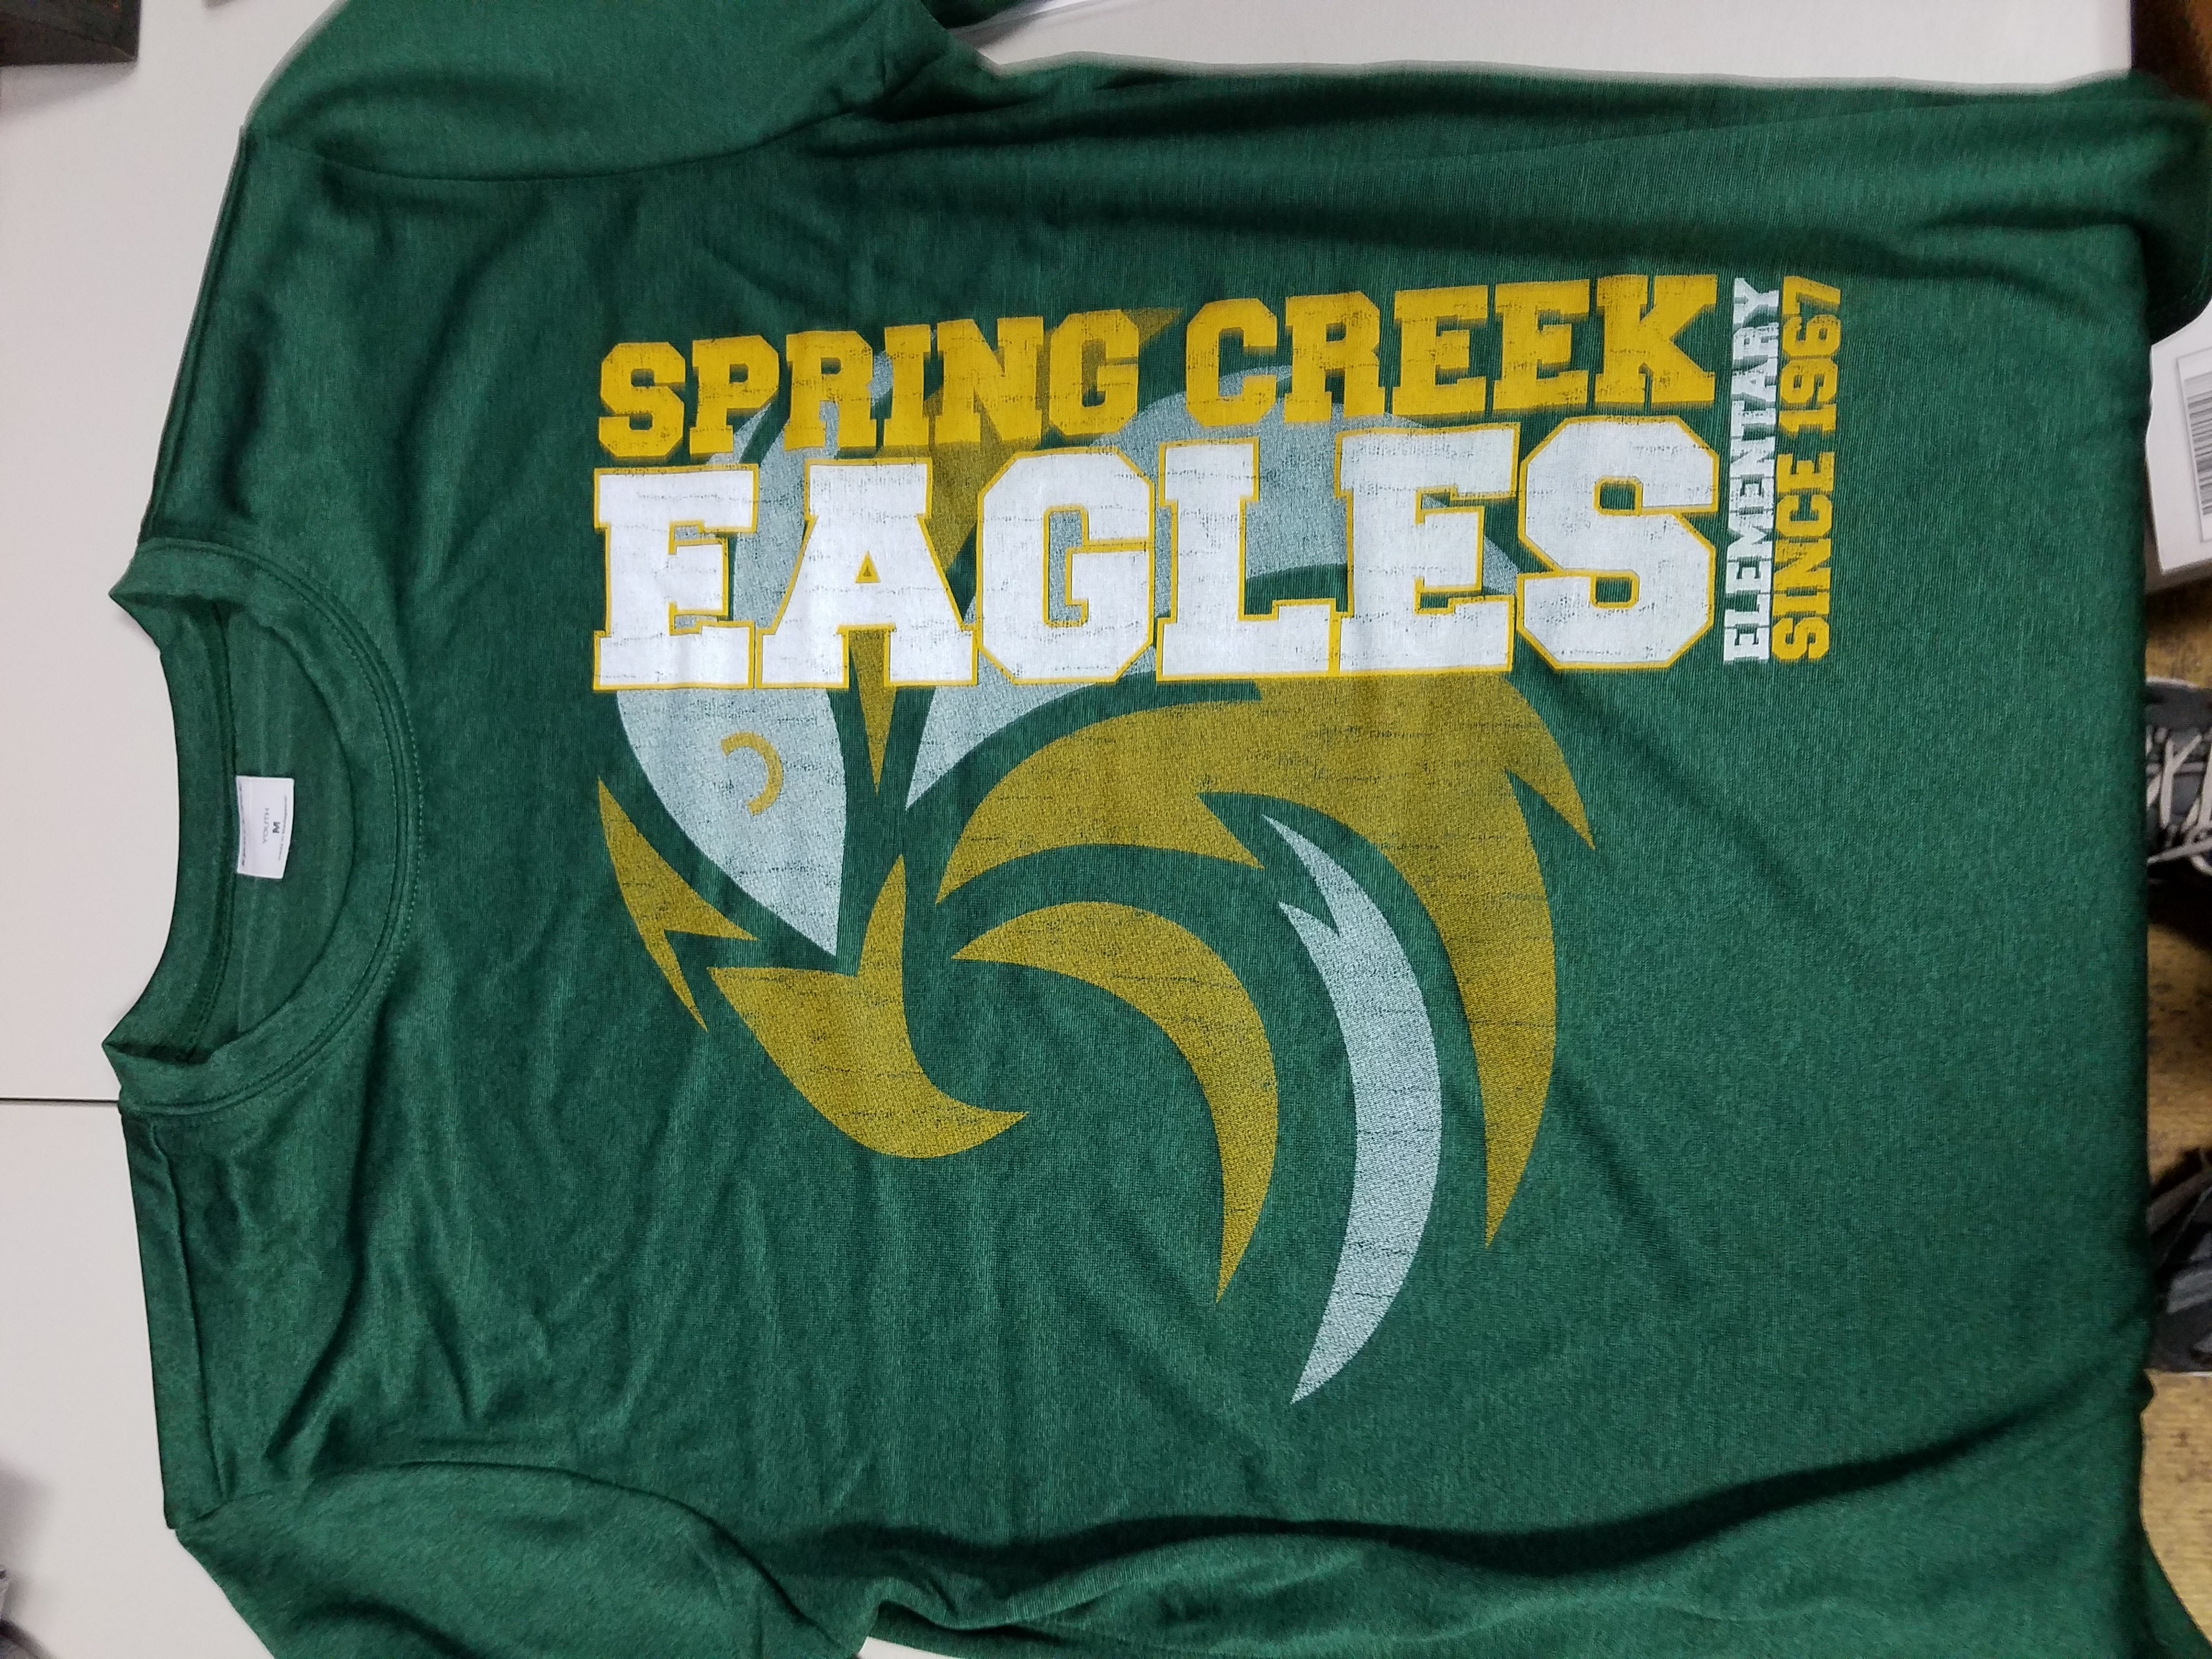 Spring Creek Dri fit shirts